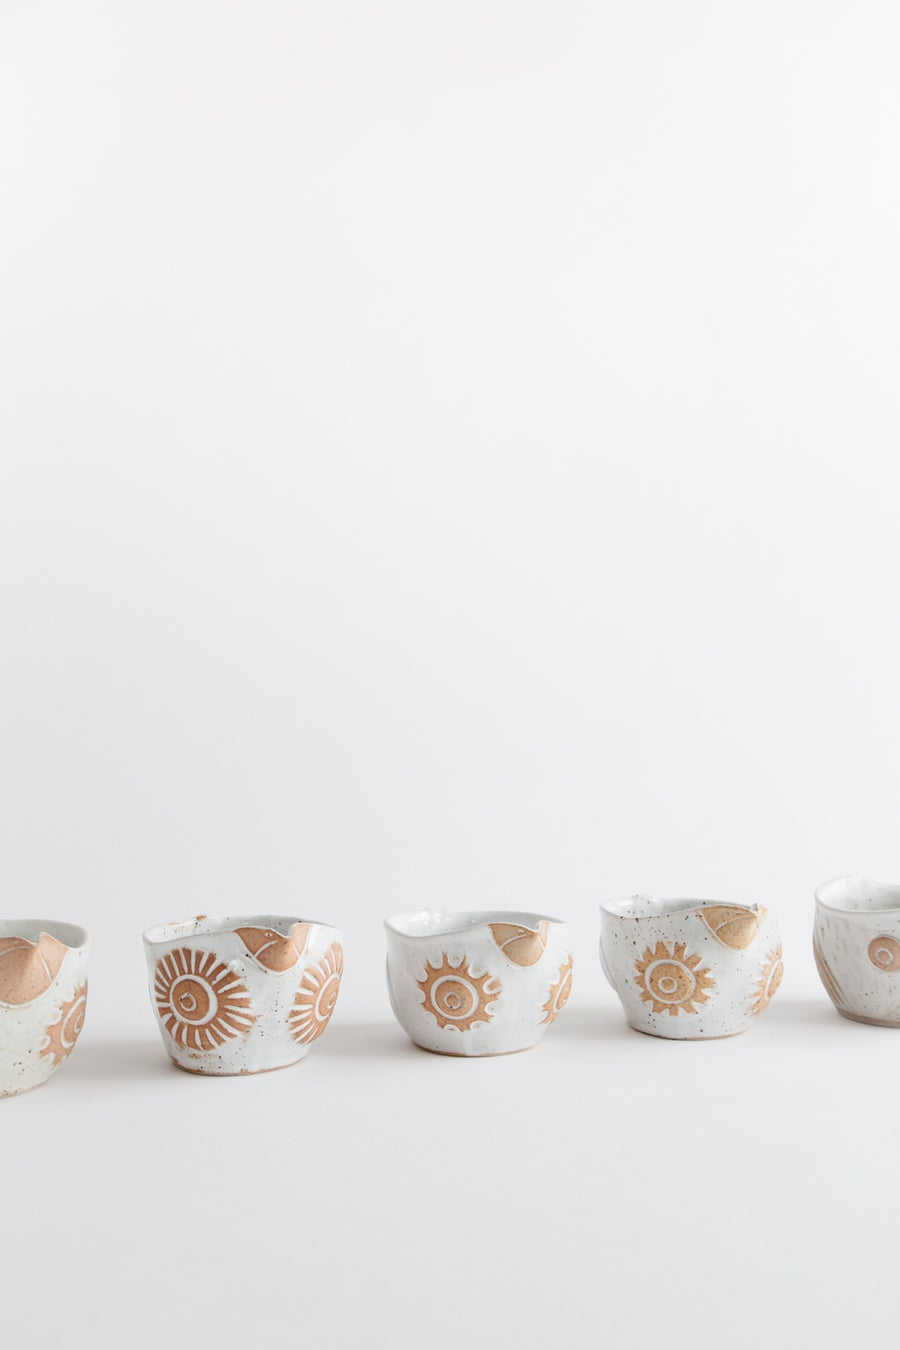 Image of Starry eyed Bird bowls